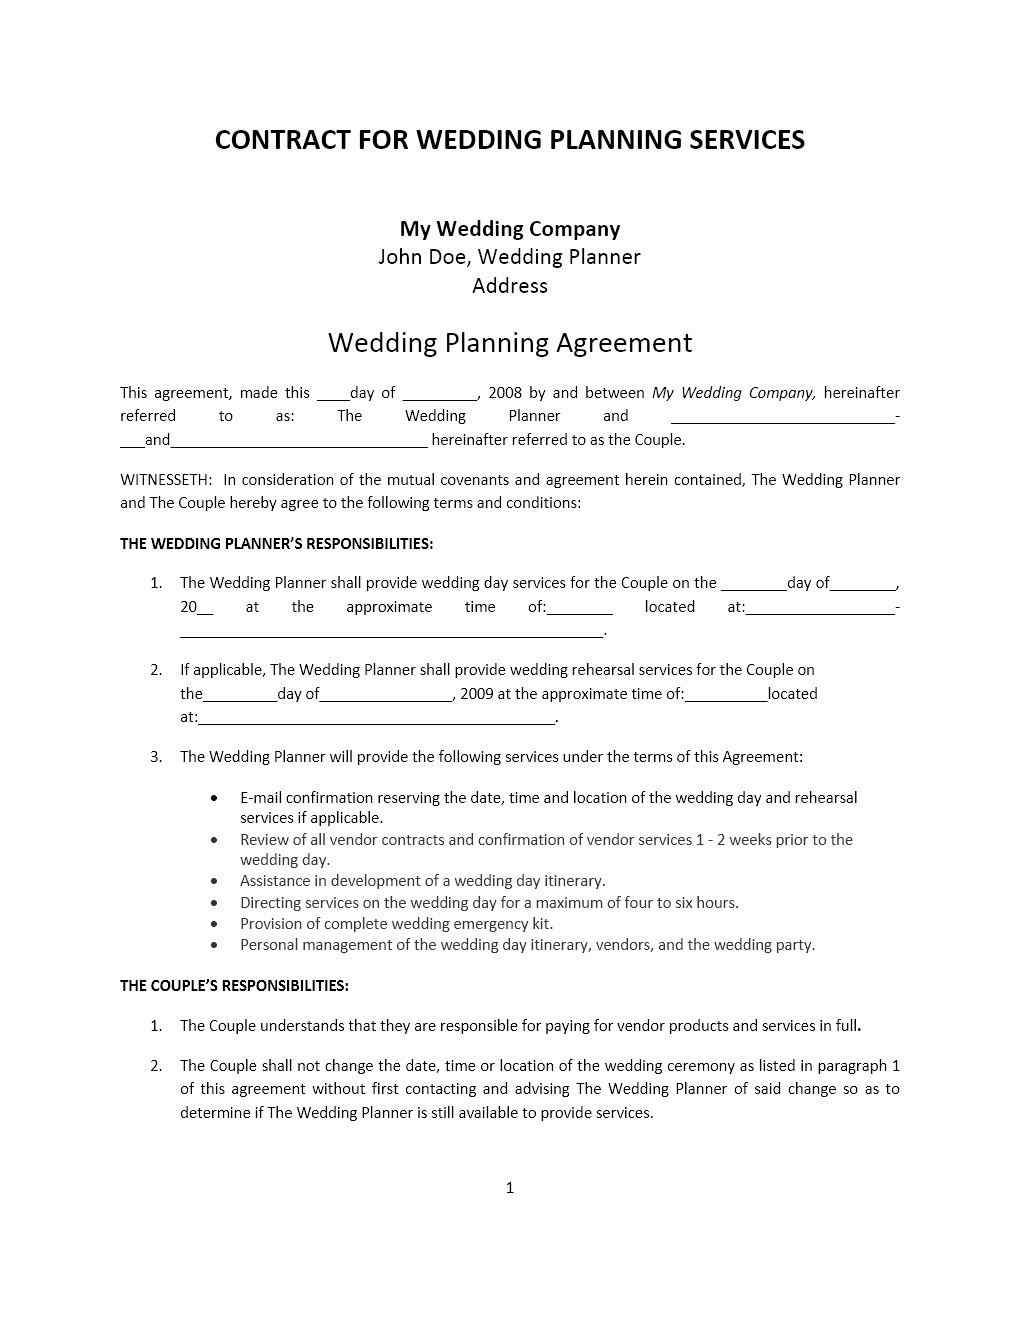 Wedding Planning Contract Templates New Wedding Planner Contract Template